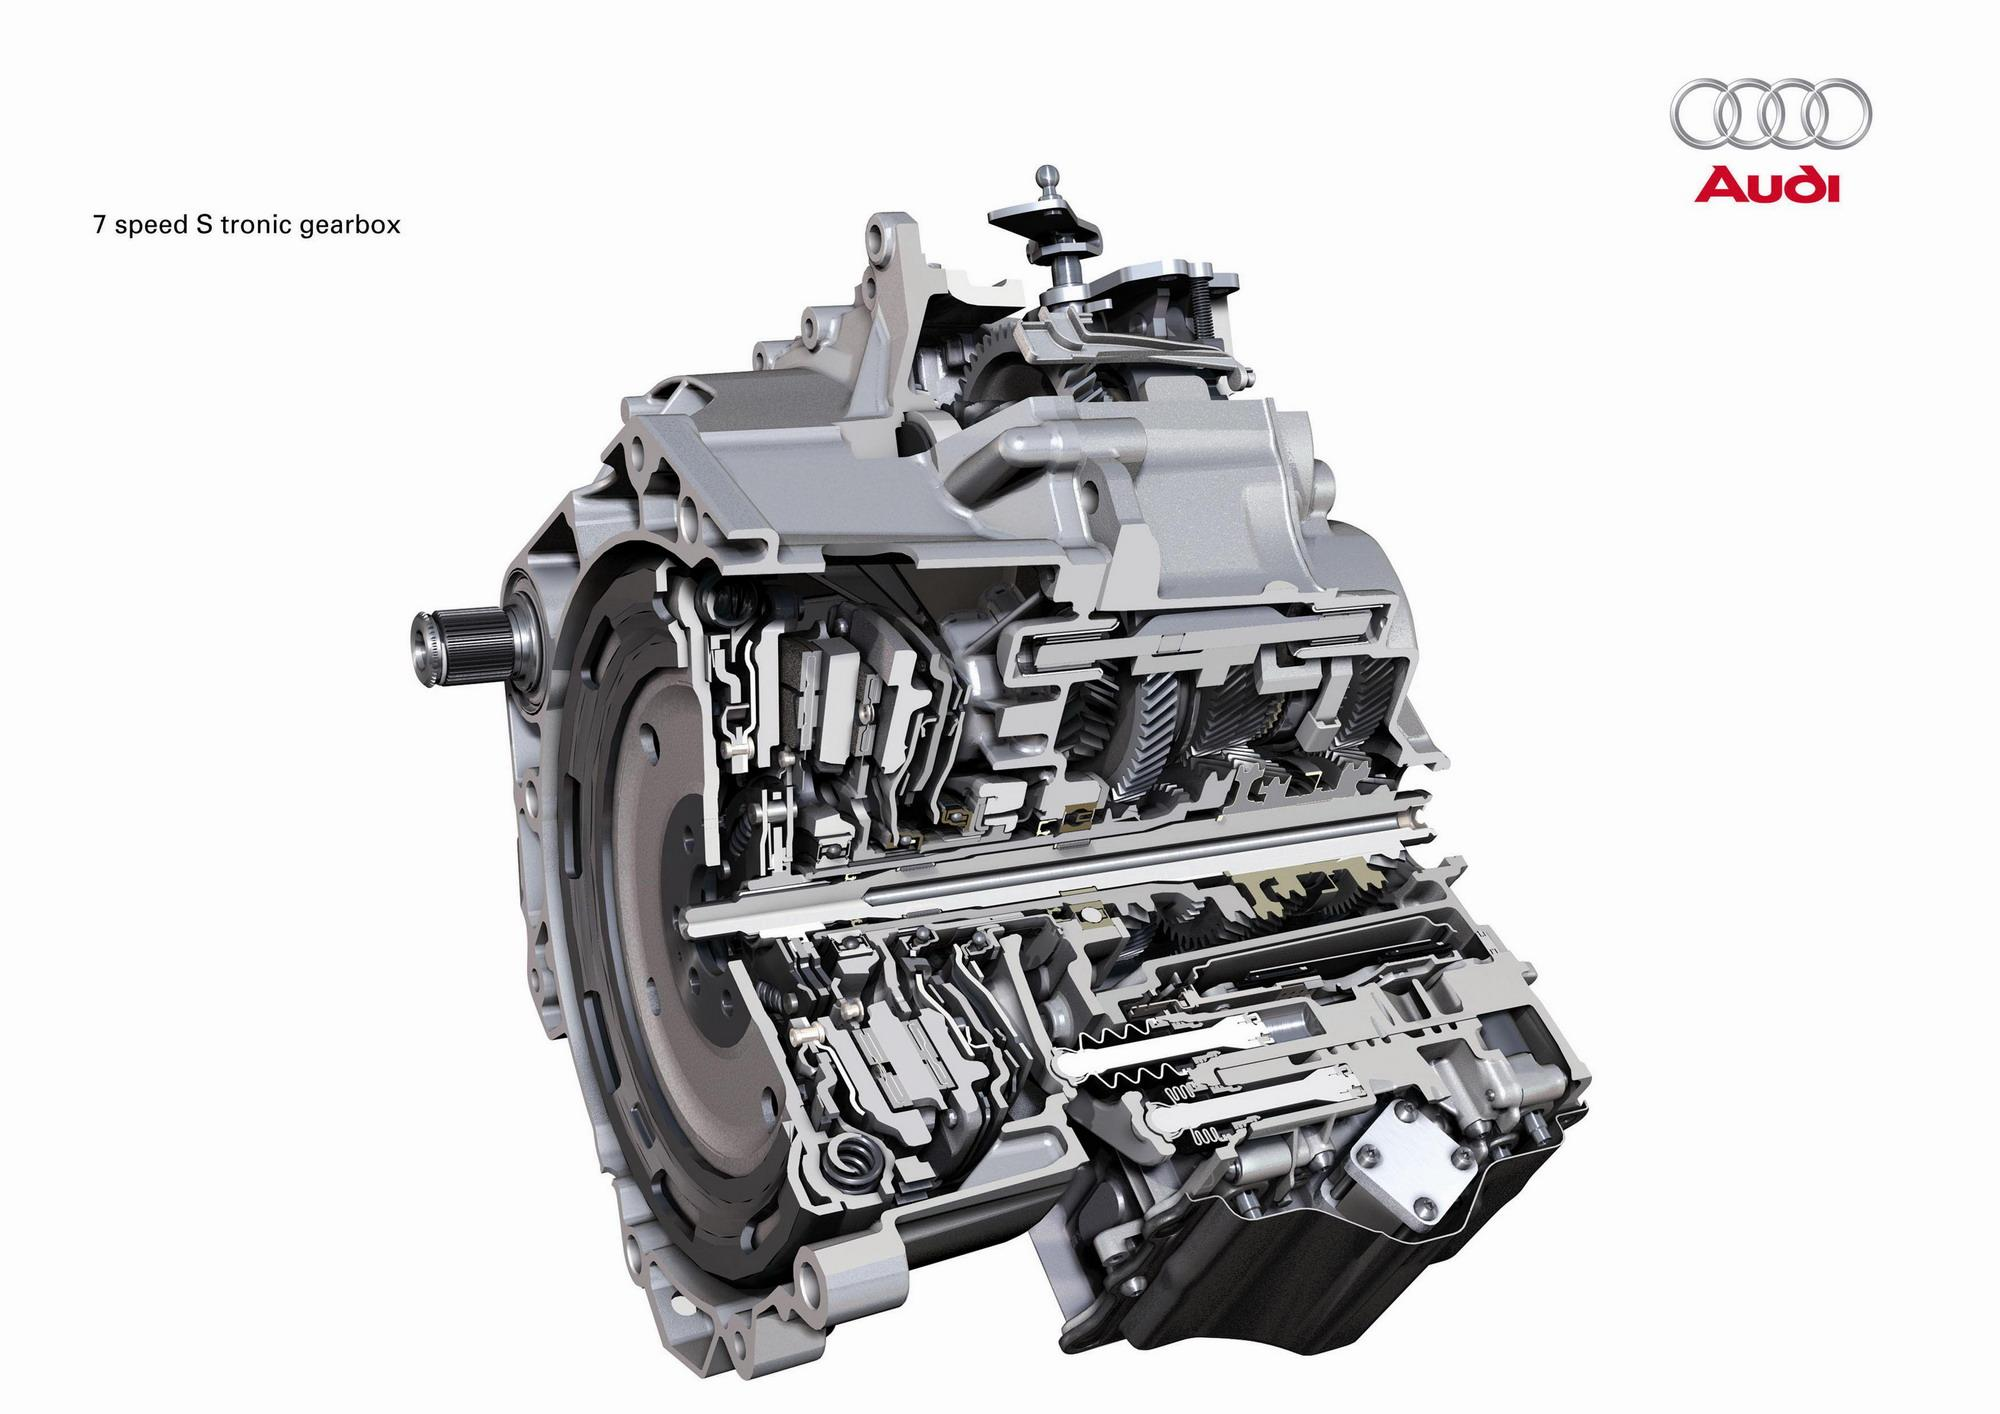 audi 39 s 7 speed s tronic gearbox news top speed. Black Bedroom Furniture Sets. Home Design Ideas